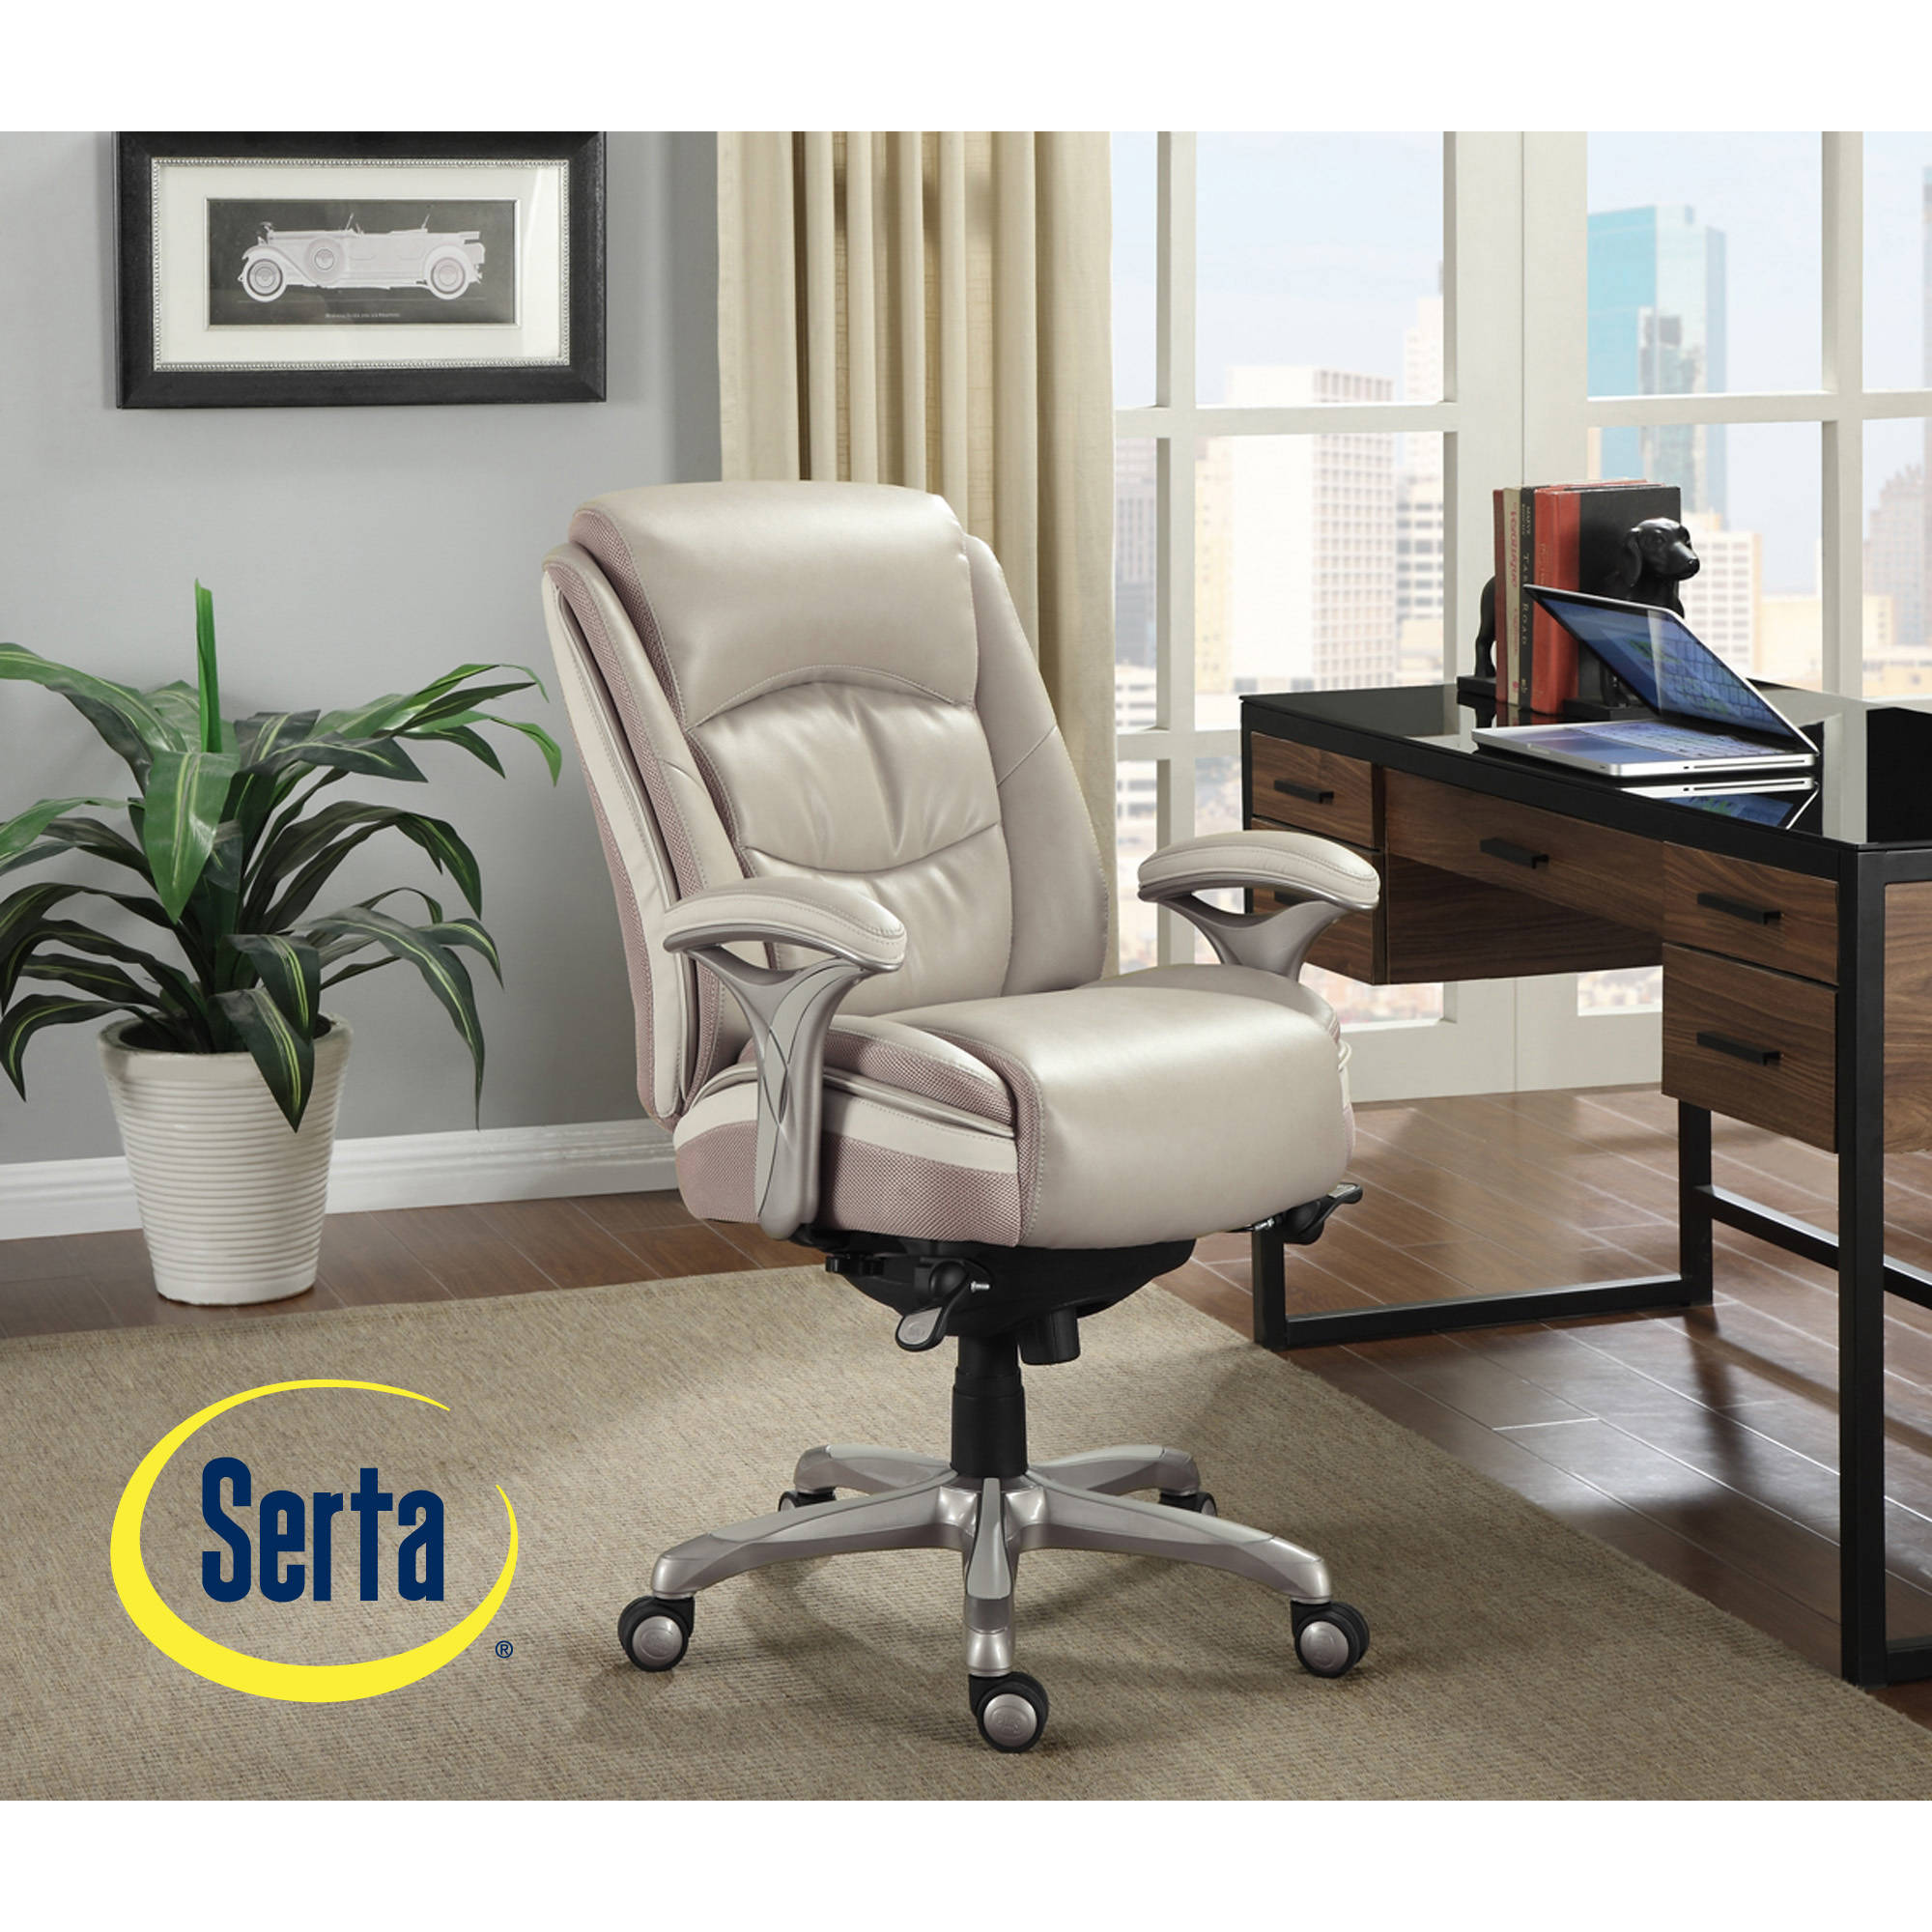 Serta Smart Layers Manager Office Chair, Serenity   Walmart.com